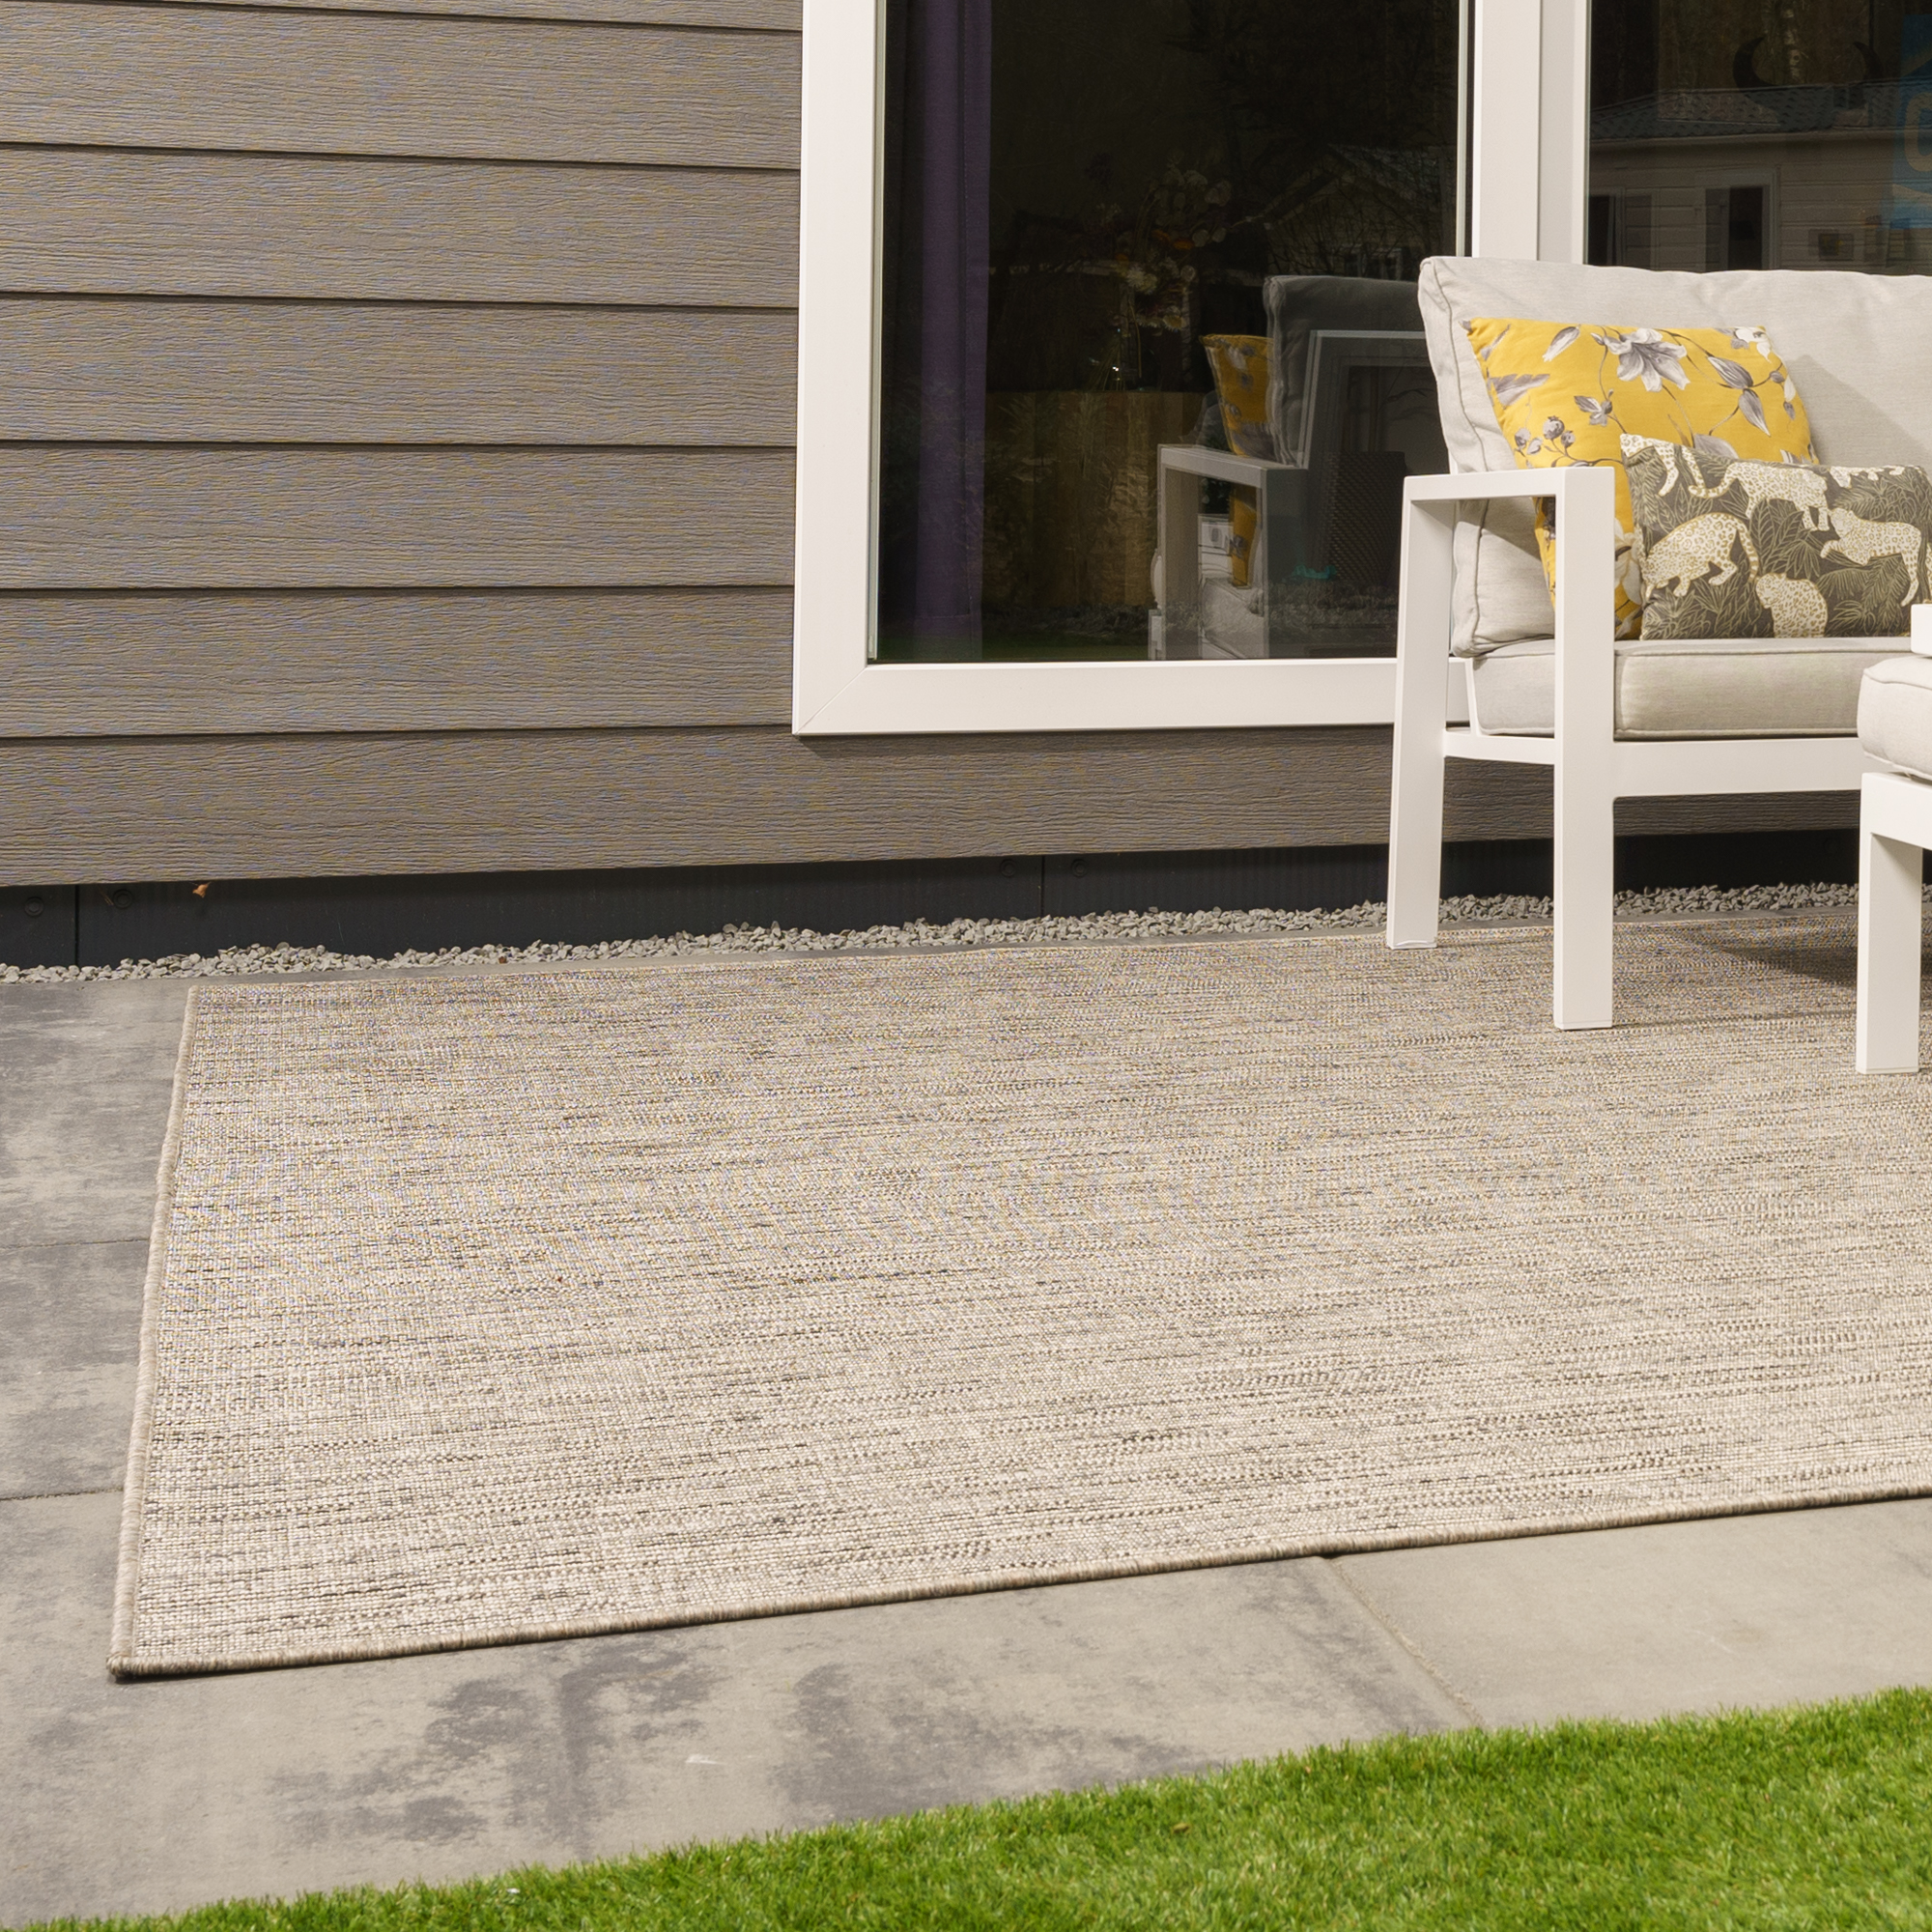 Vloerkleed Xilento Outdoor 4001-71